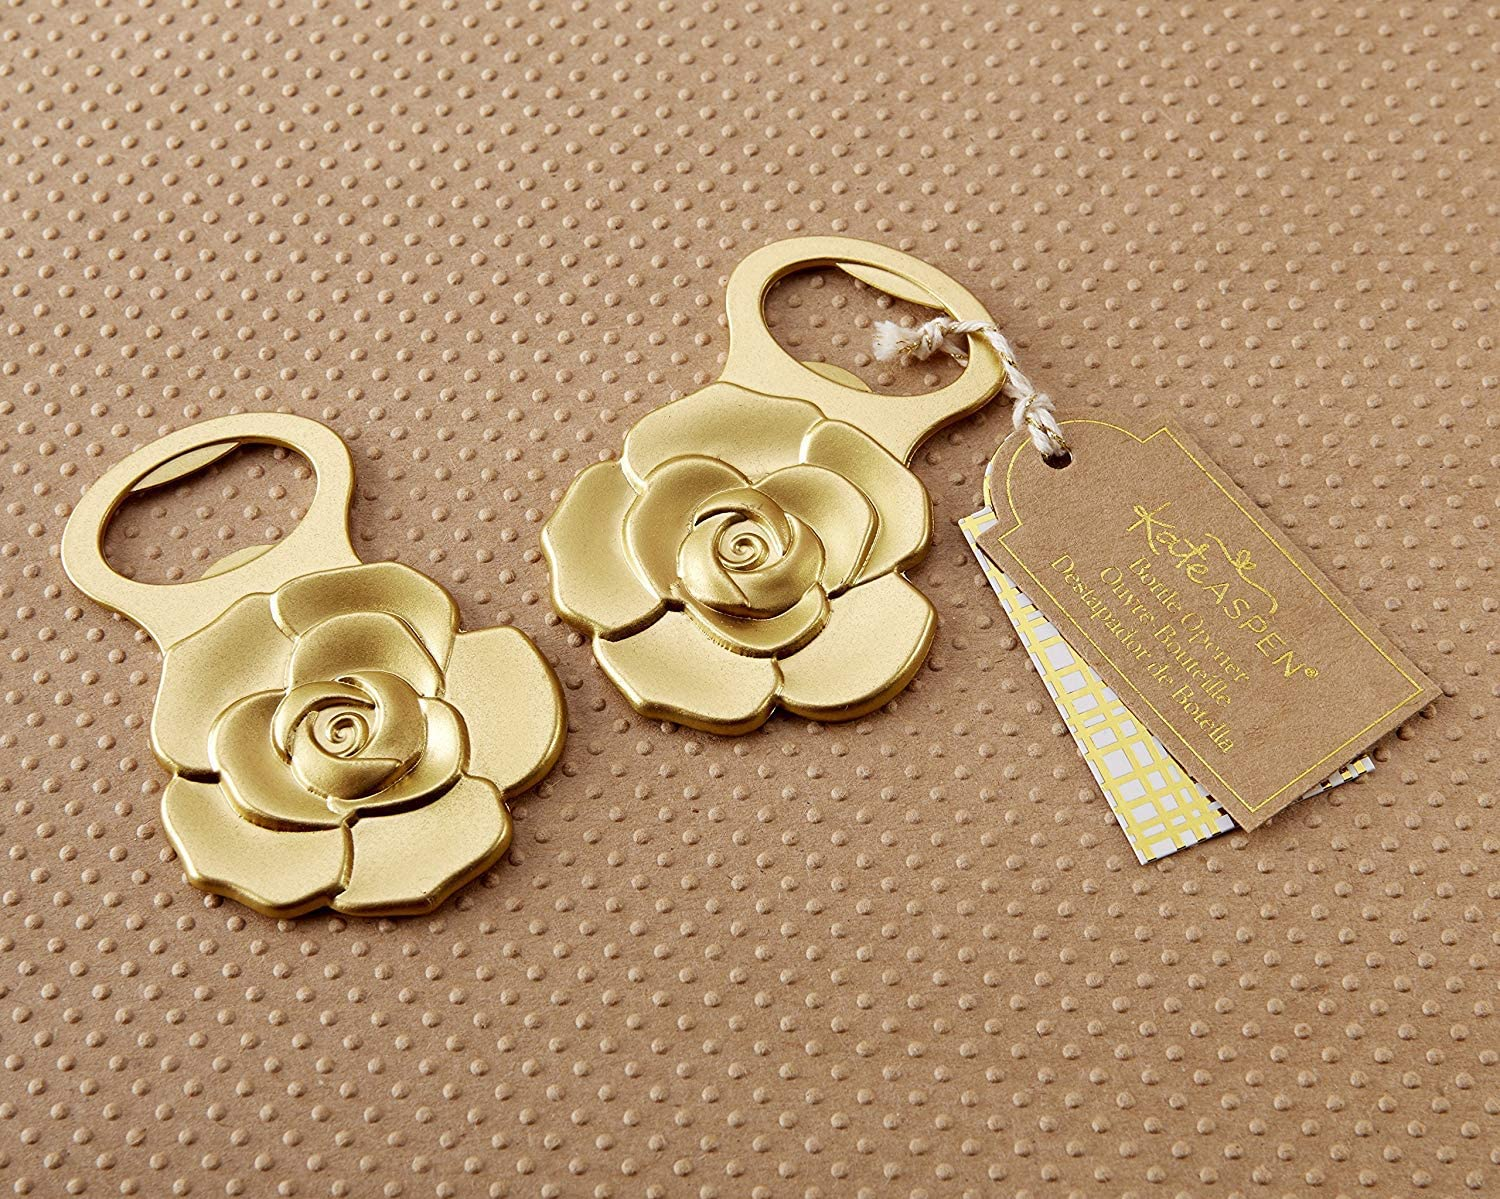 Kate Aspen, Metallic Gold Rose Bottle Opener, perfect for Wedding Favors & Party Decors, Gifts [並行輸入品]